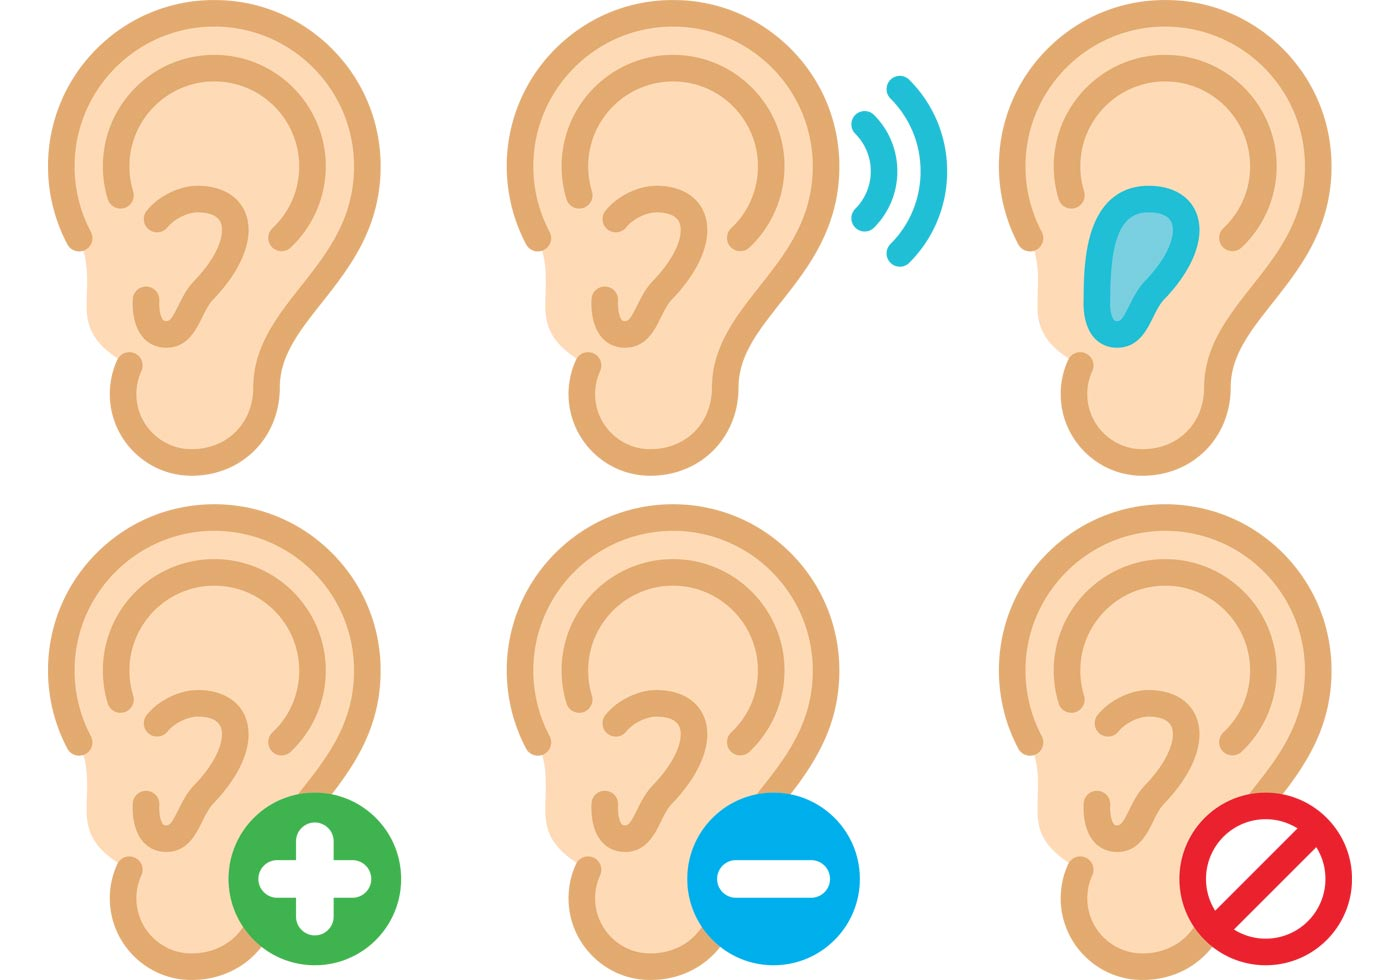 Human Ear Vector Icons Download Free Vector Art Stock